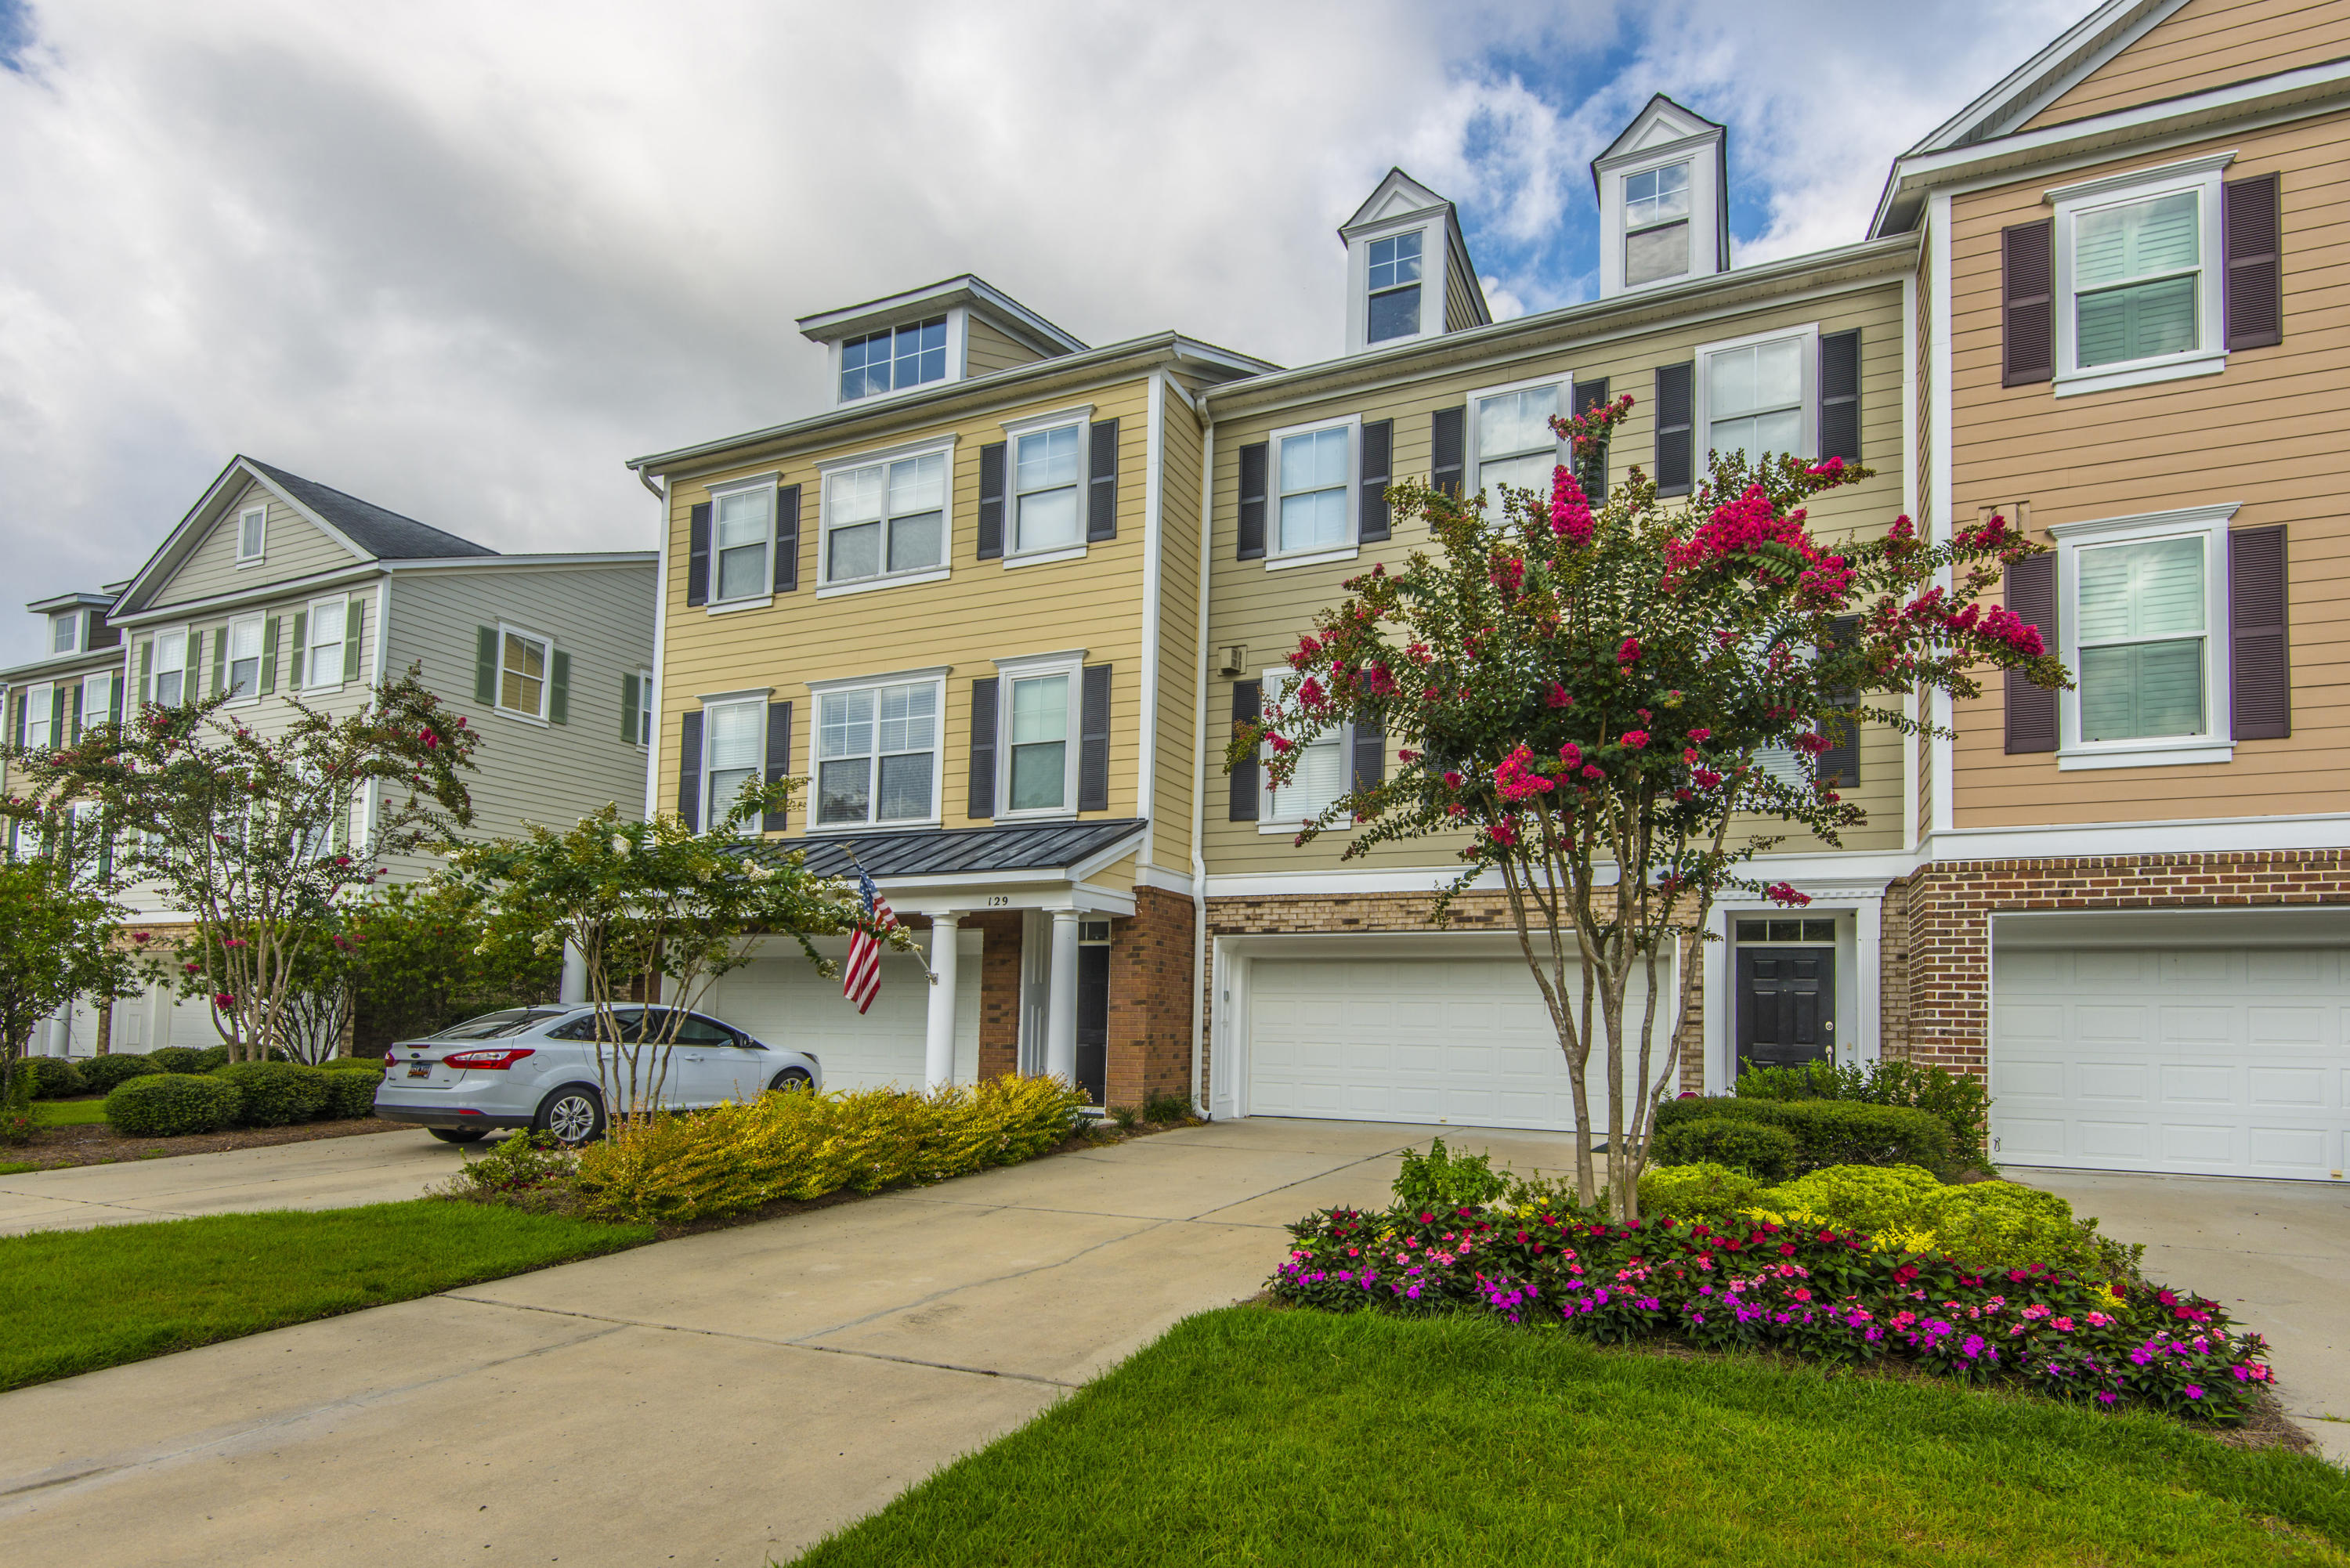 Home for sale 129 Palm Cove Way, Dunes West, Mt. Pleasant, SC